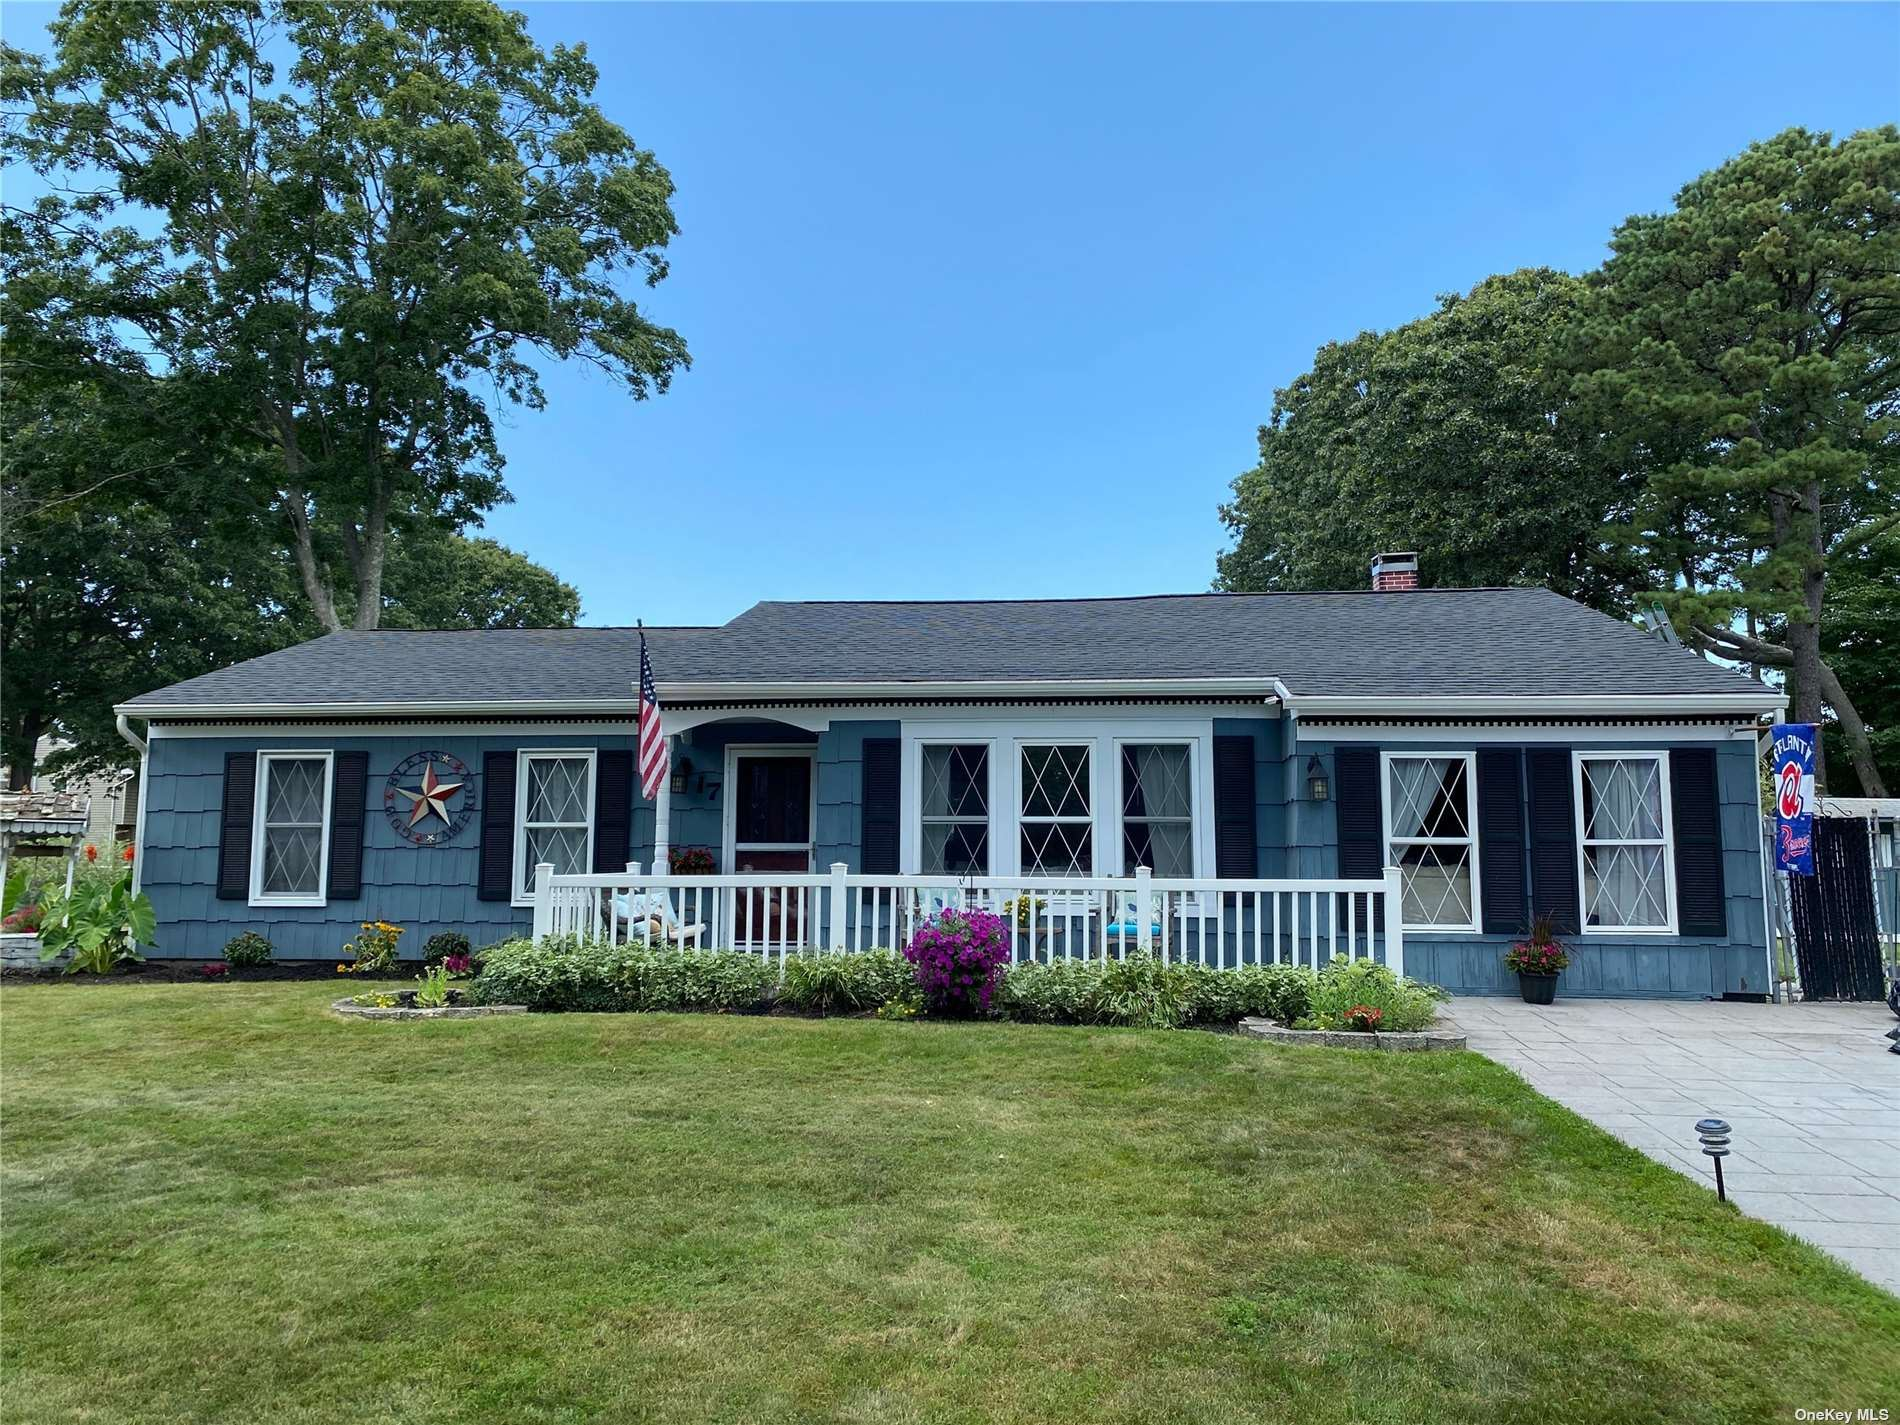 17 Cullen Lane, Middle Island, NY 11953 - MLS#: 3331954